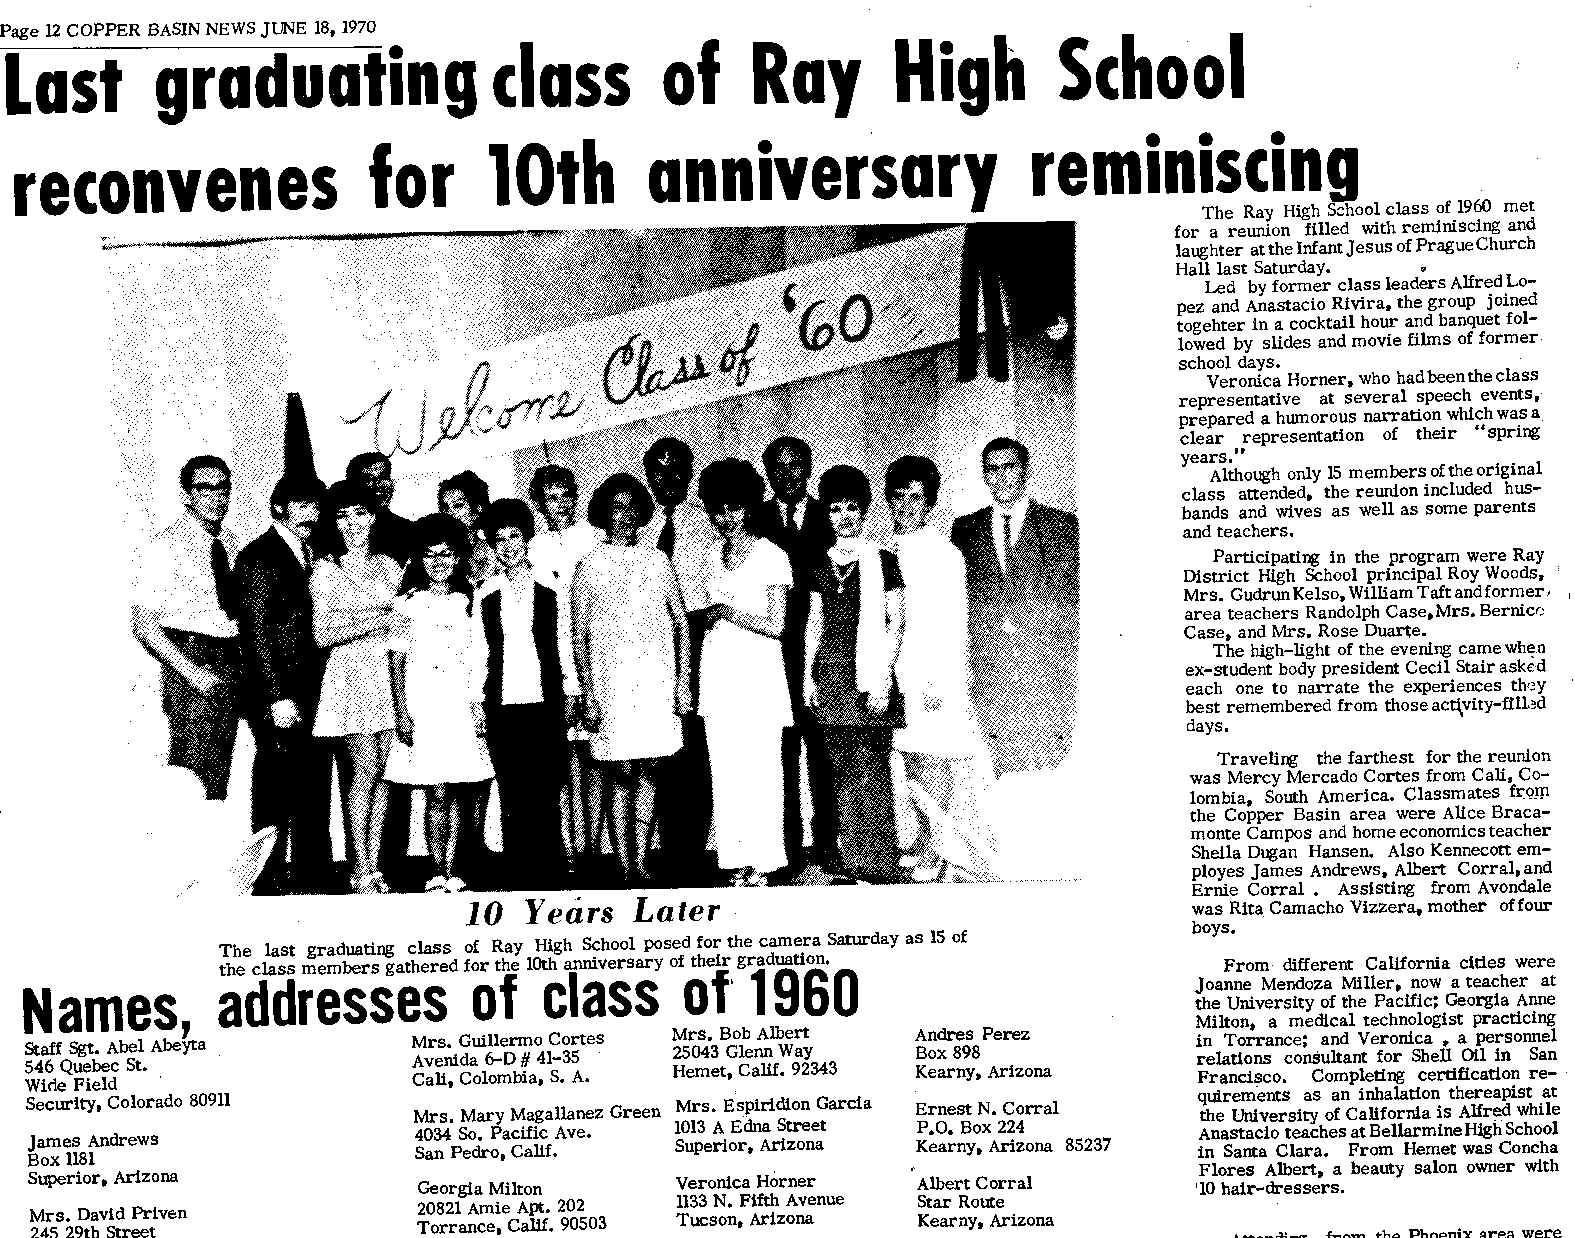 Ray High School Alumni: A Little Reminiscing for the Class